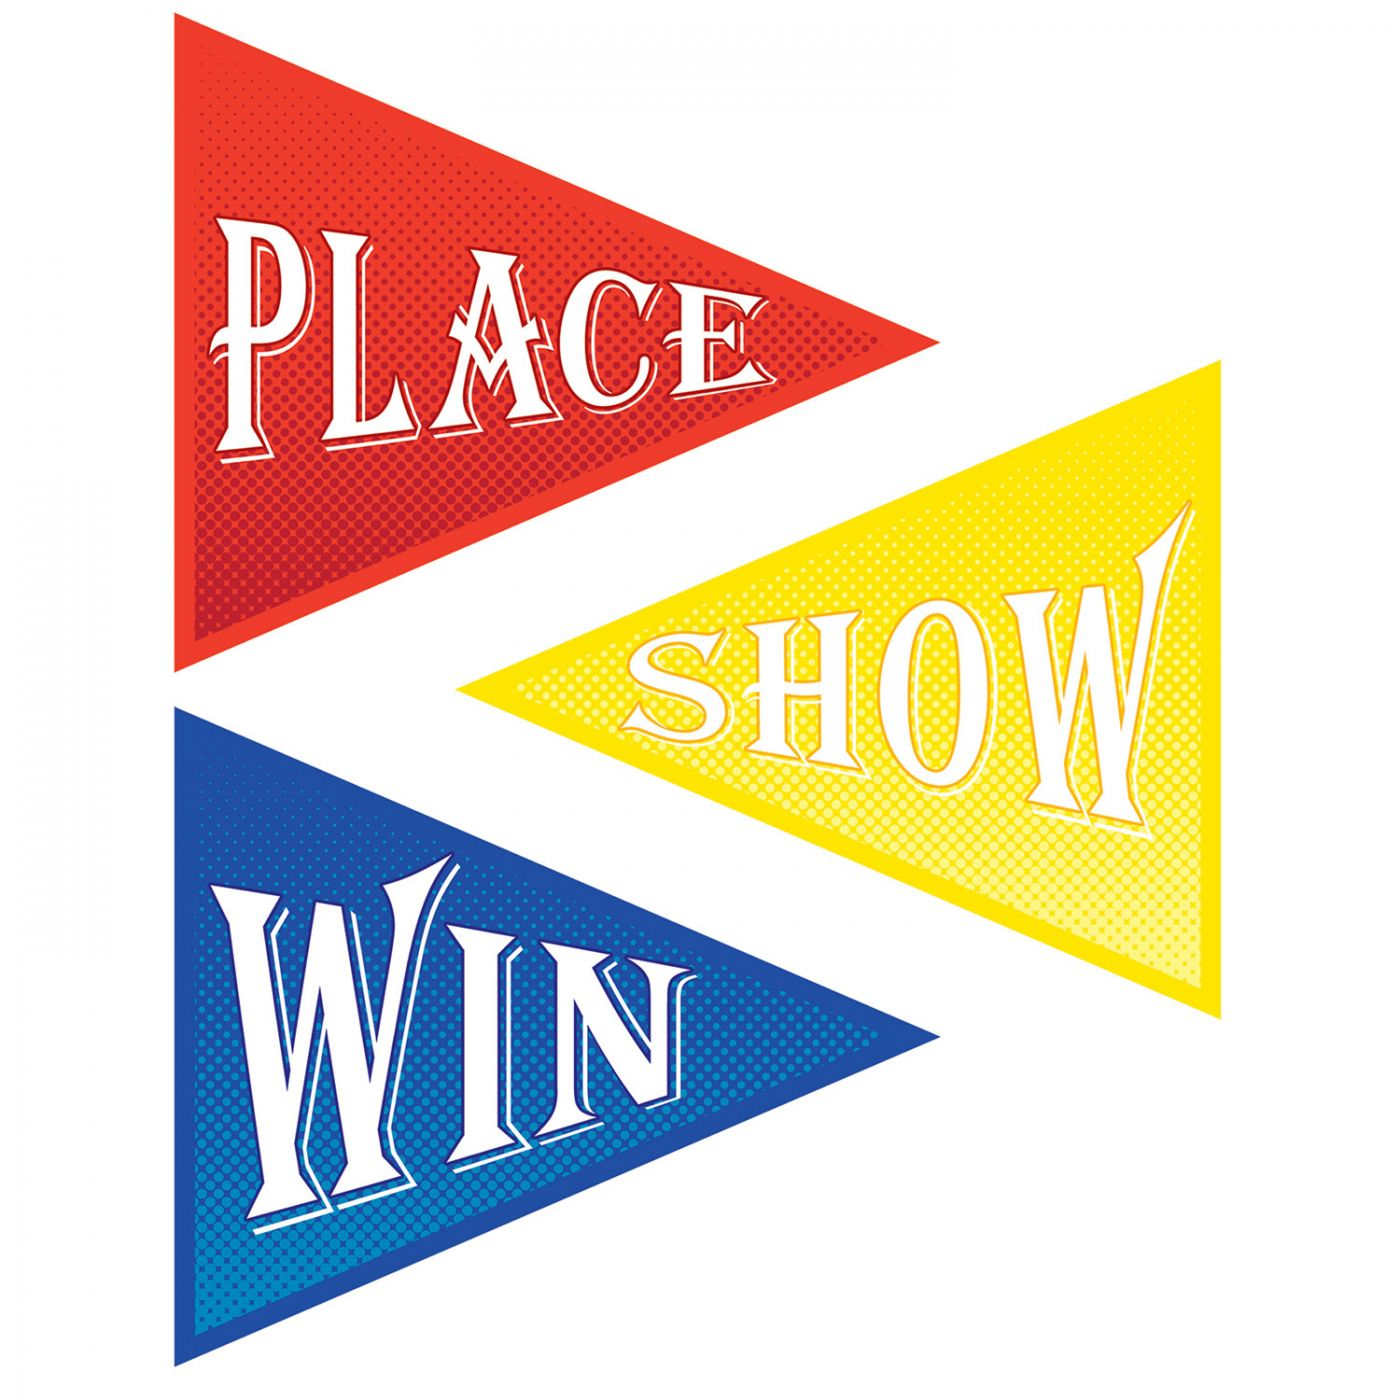 Place, Win & Show Cutouts image